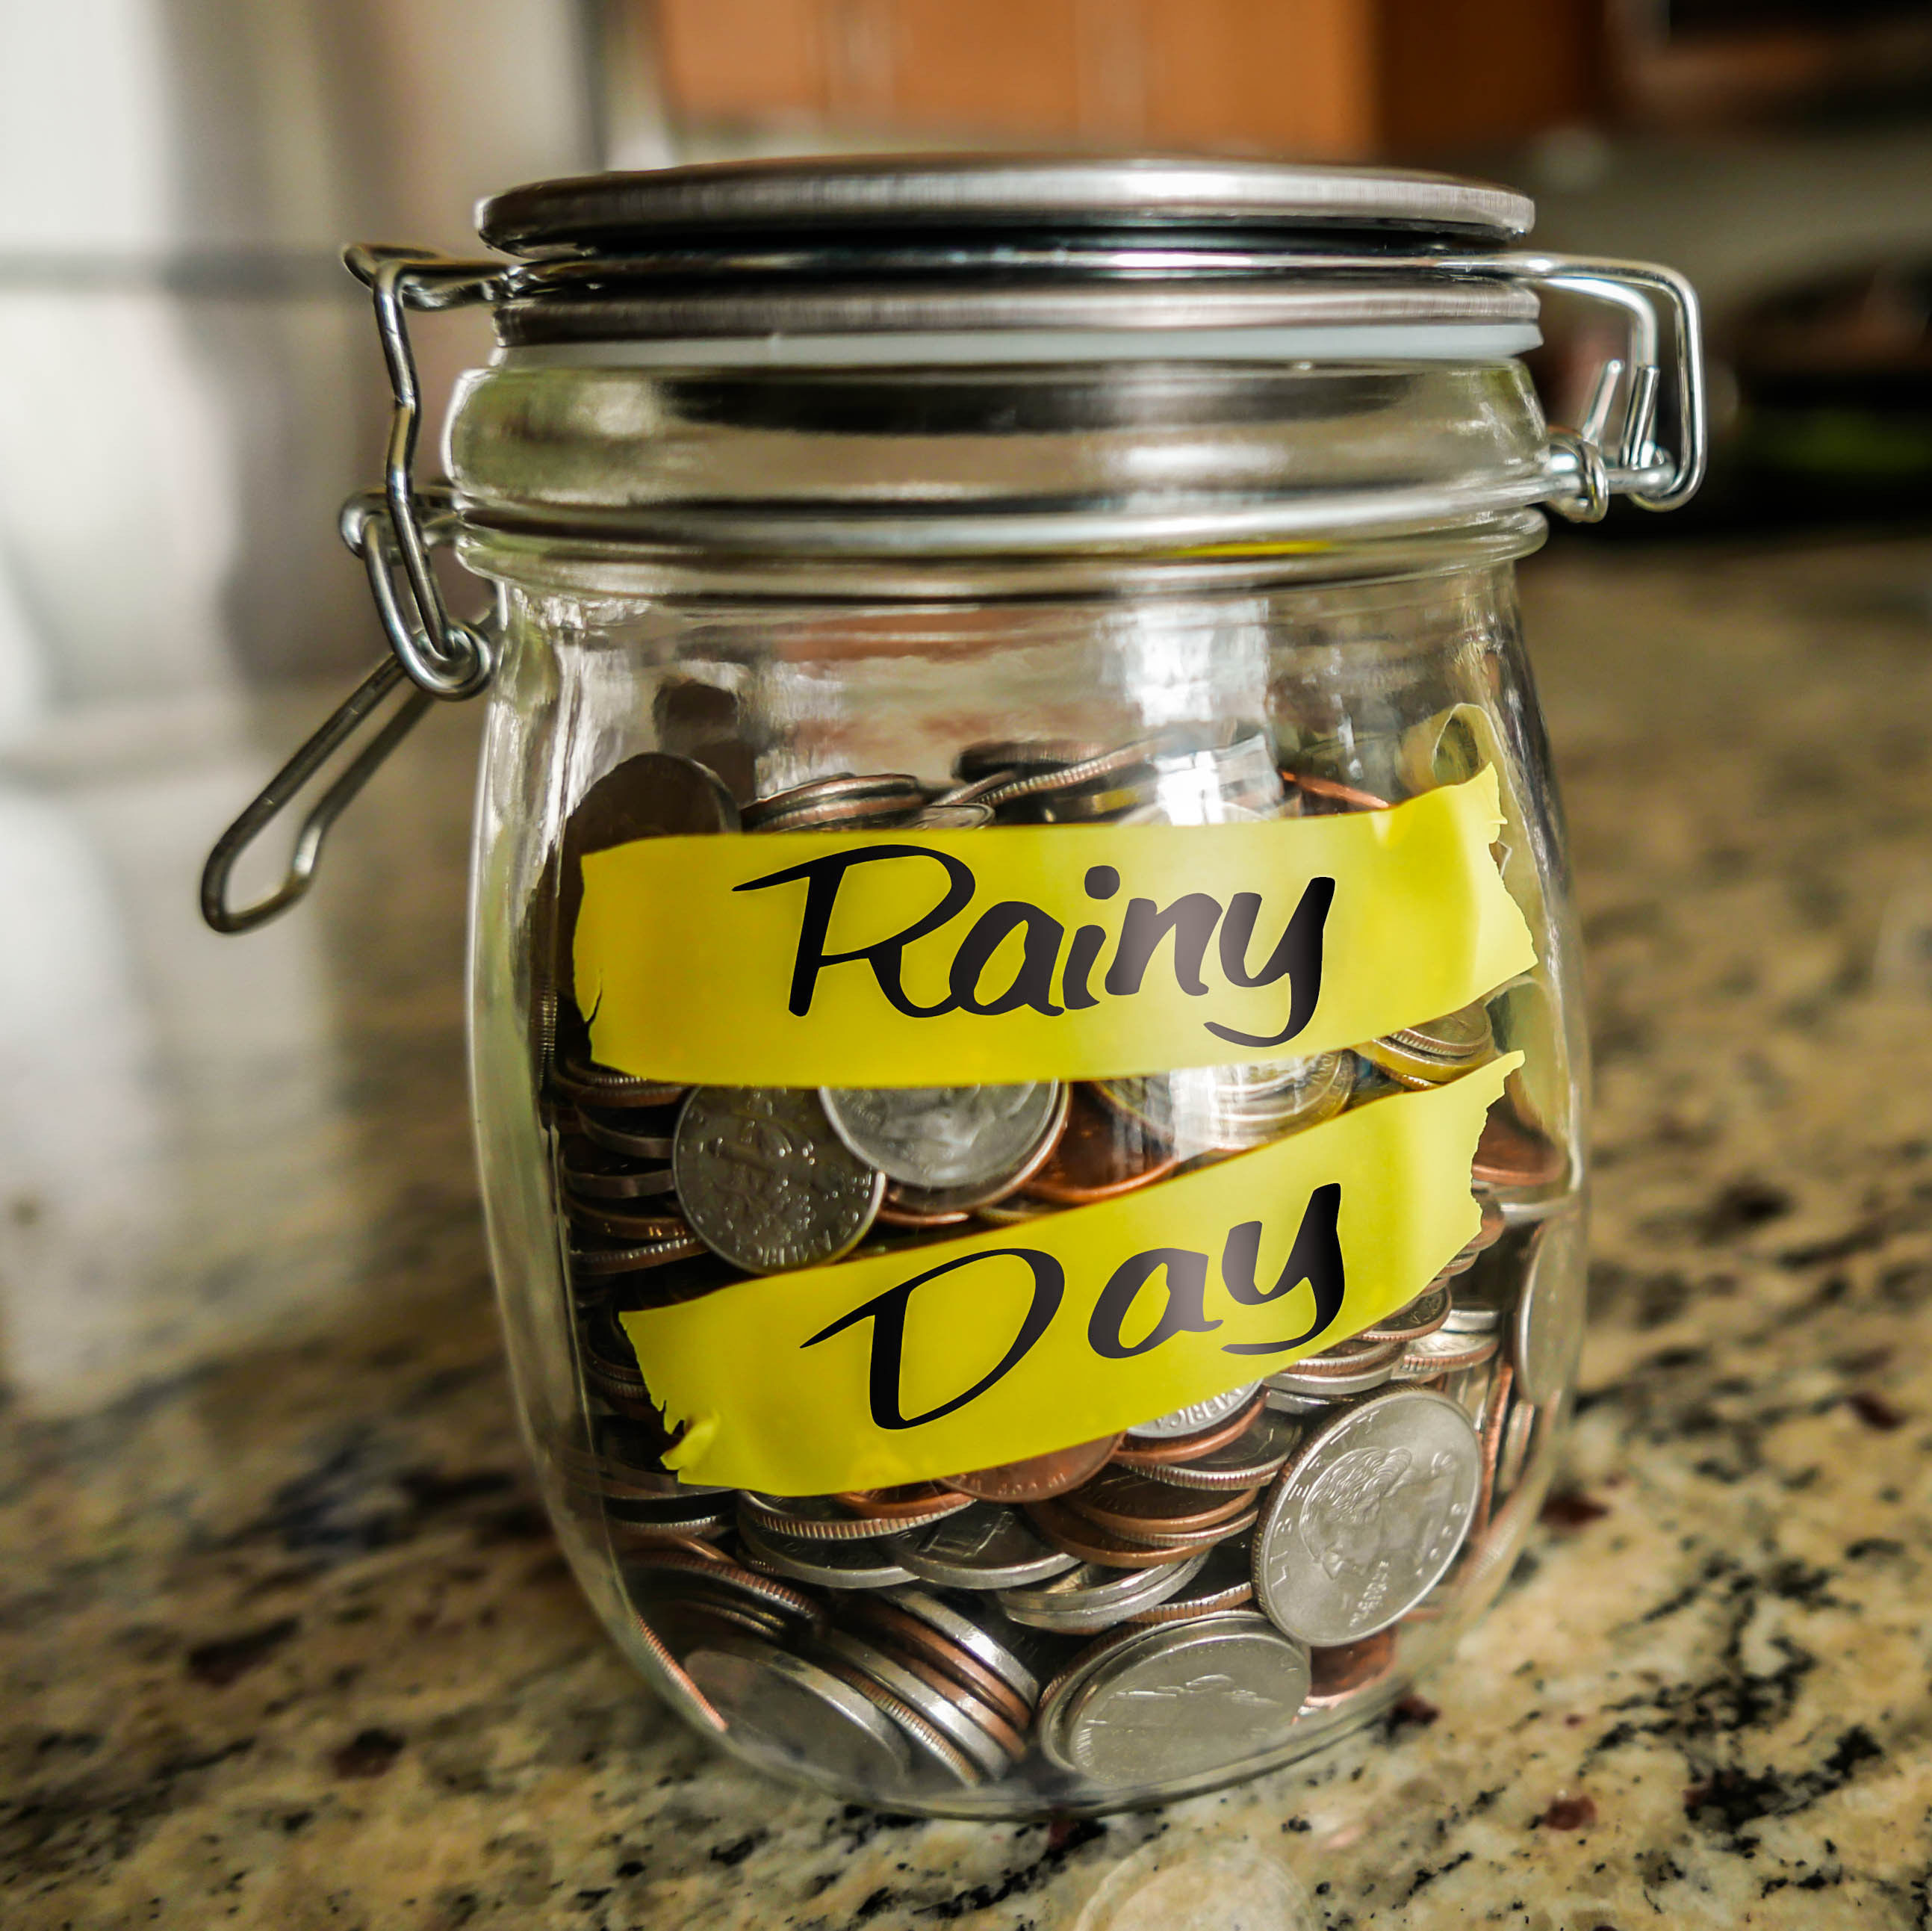 Rainy day fund acgmca